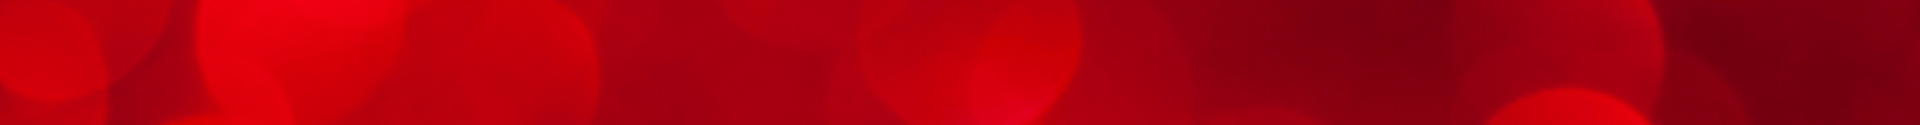 Red Poppy Spacer(2).png